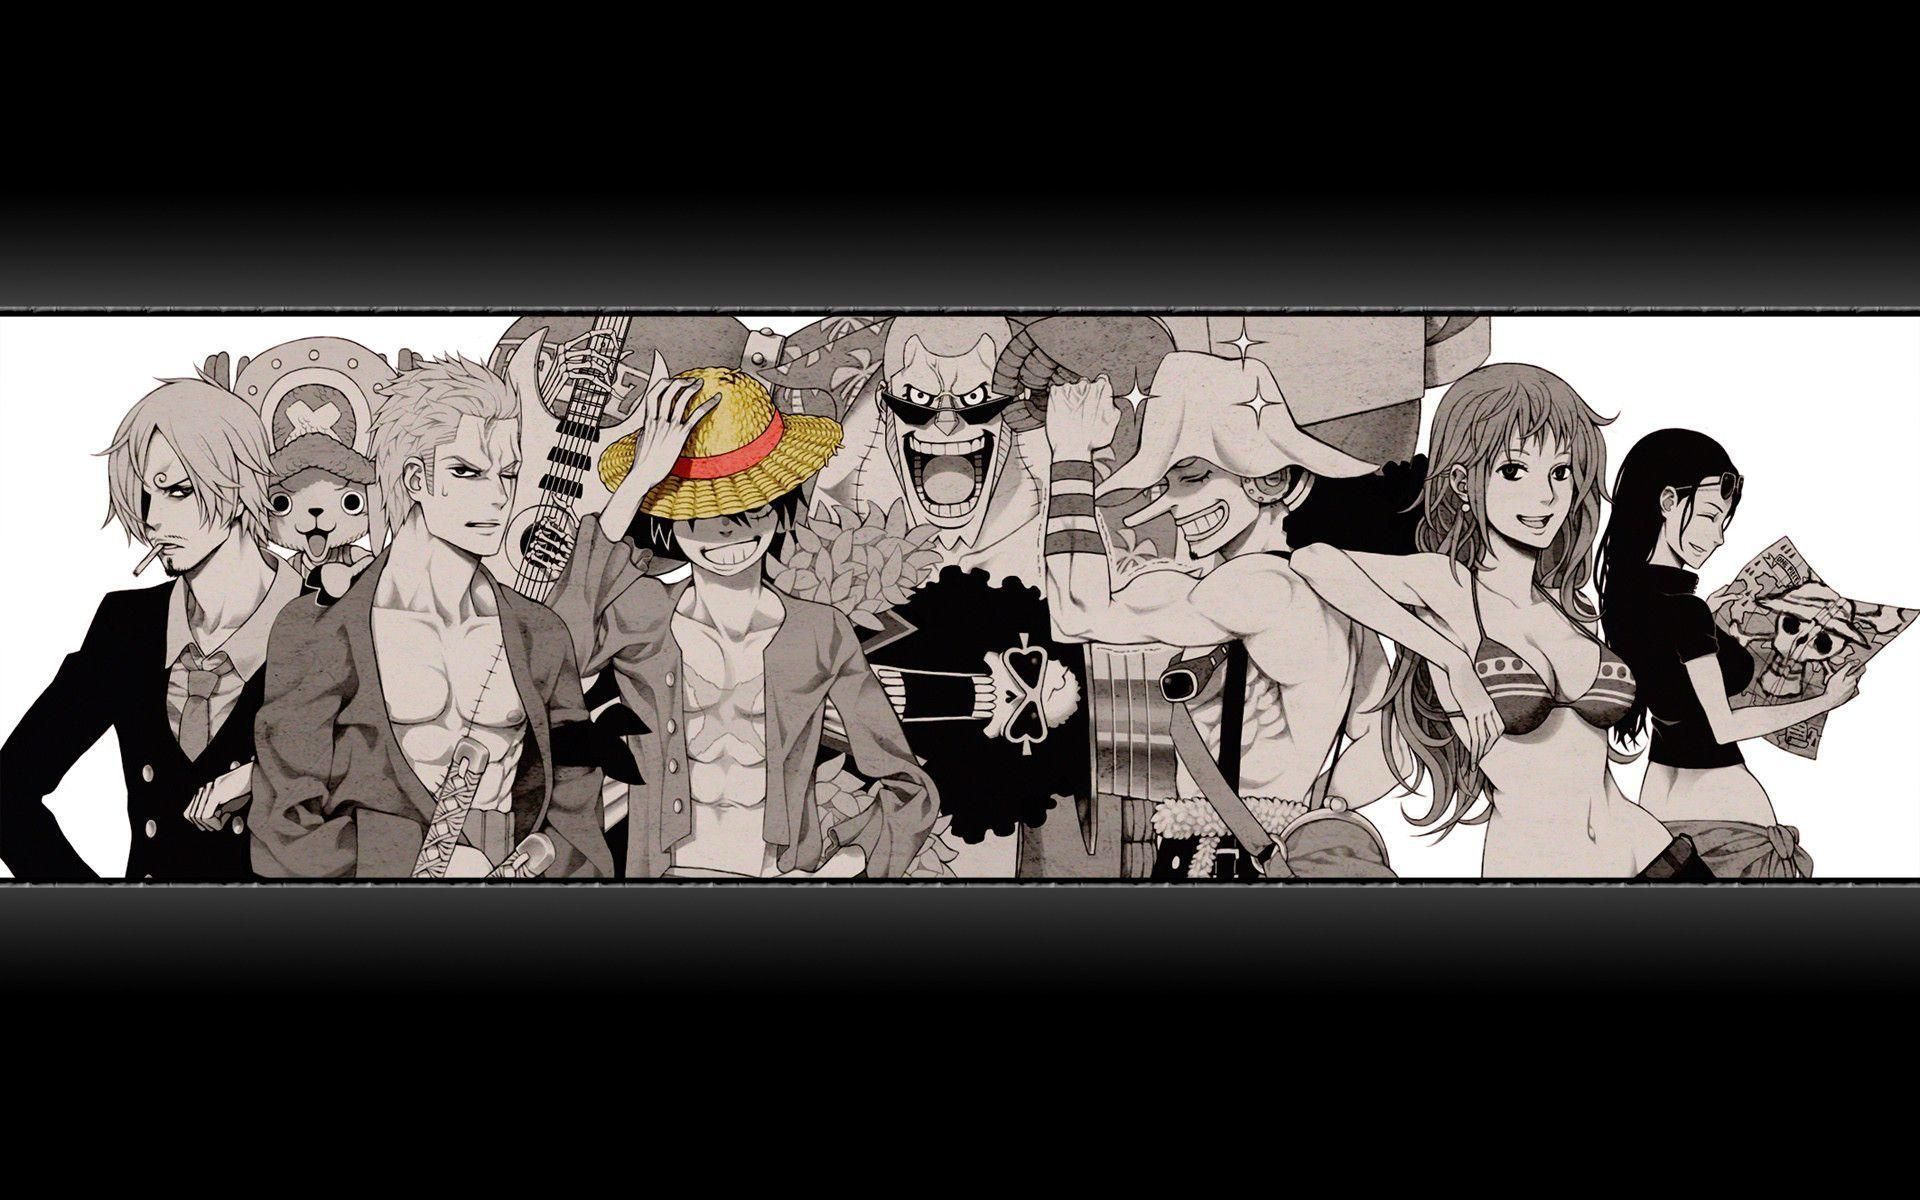 wallpaper-one-piece-for-mobile-26 one piece anime cartoon HD free ...